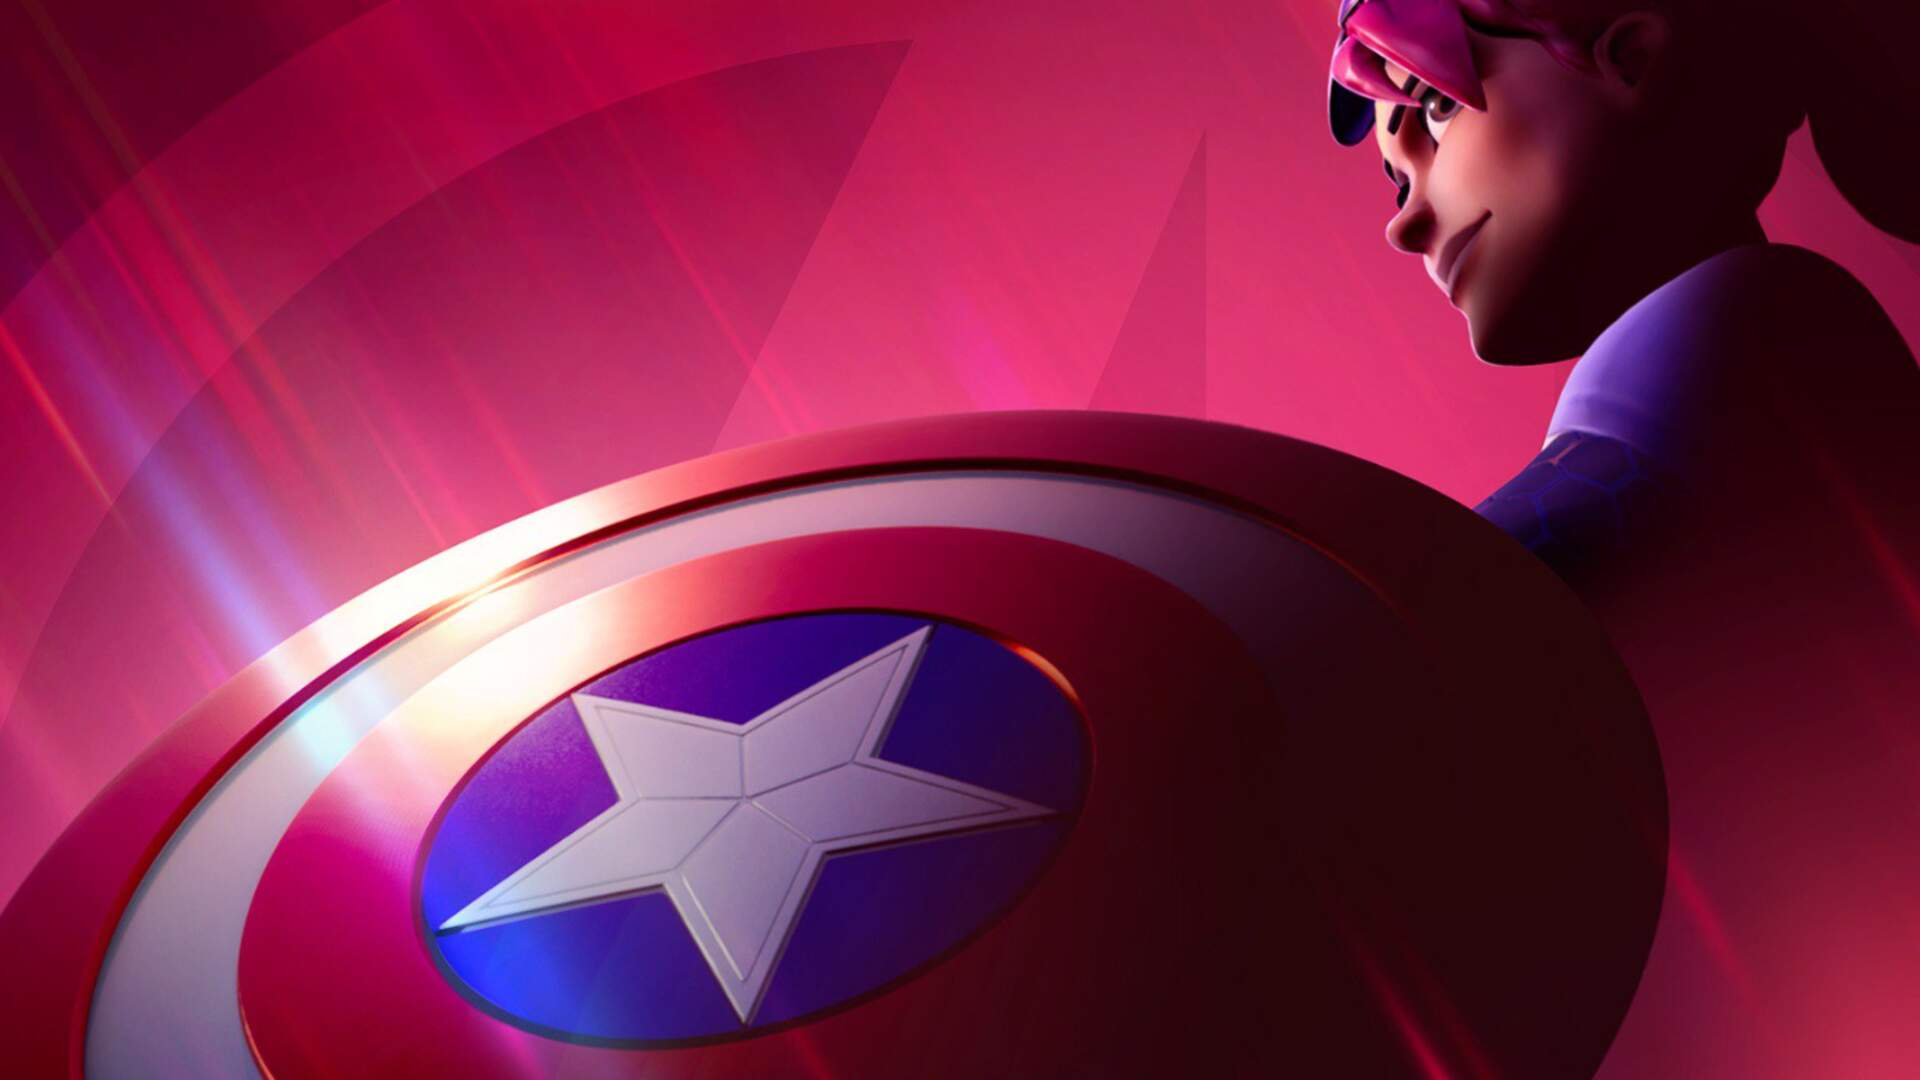 Fortnite's Teasing an Avengers: Endgame Crossover With Captain America